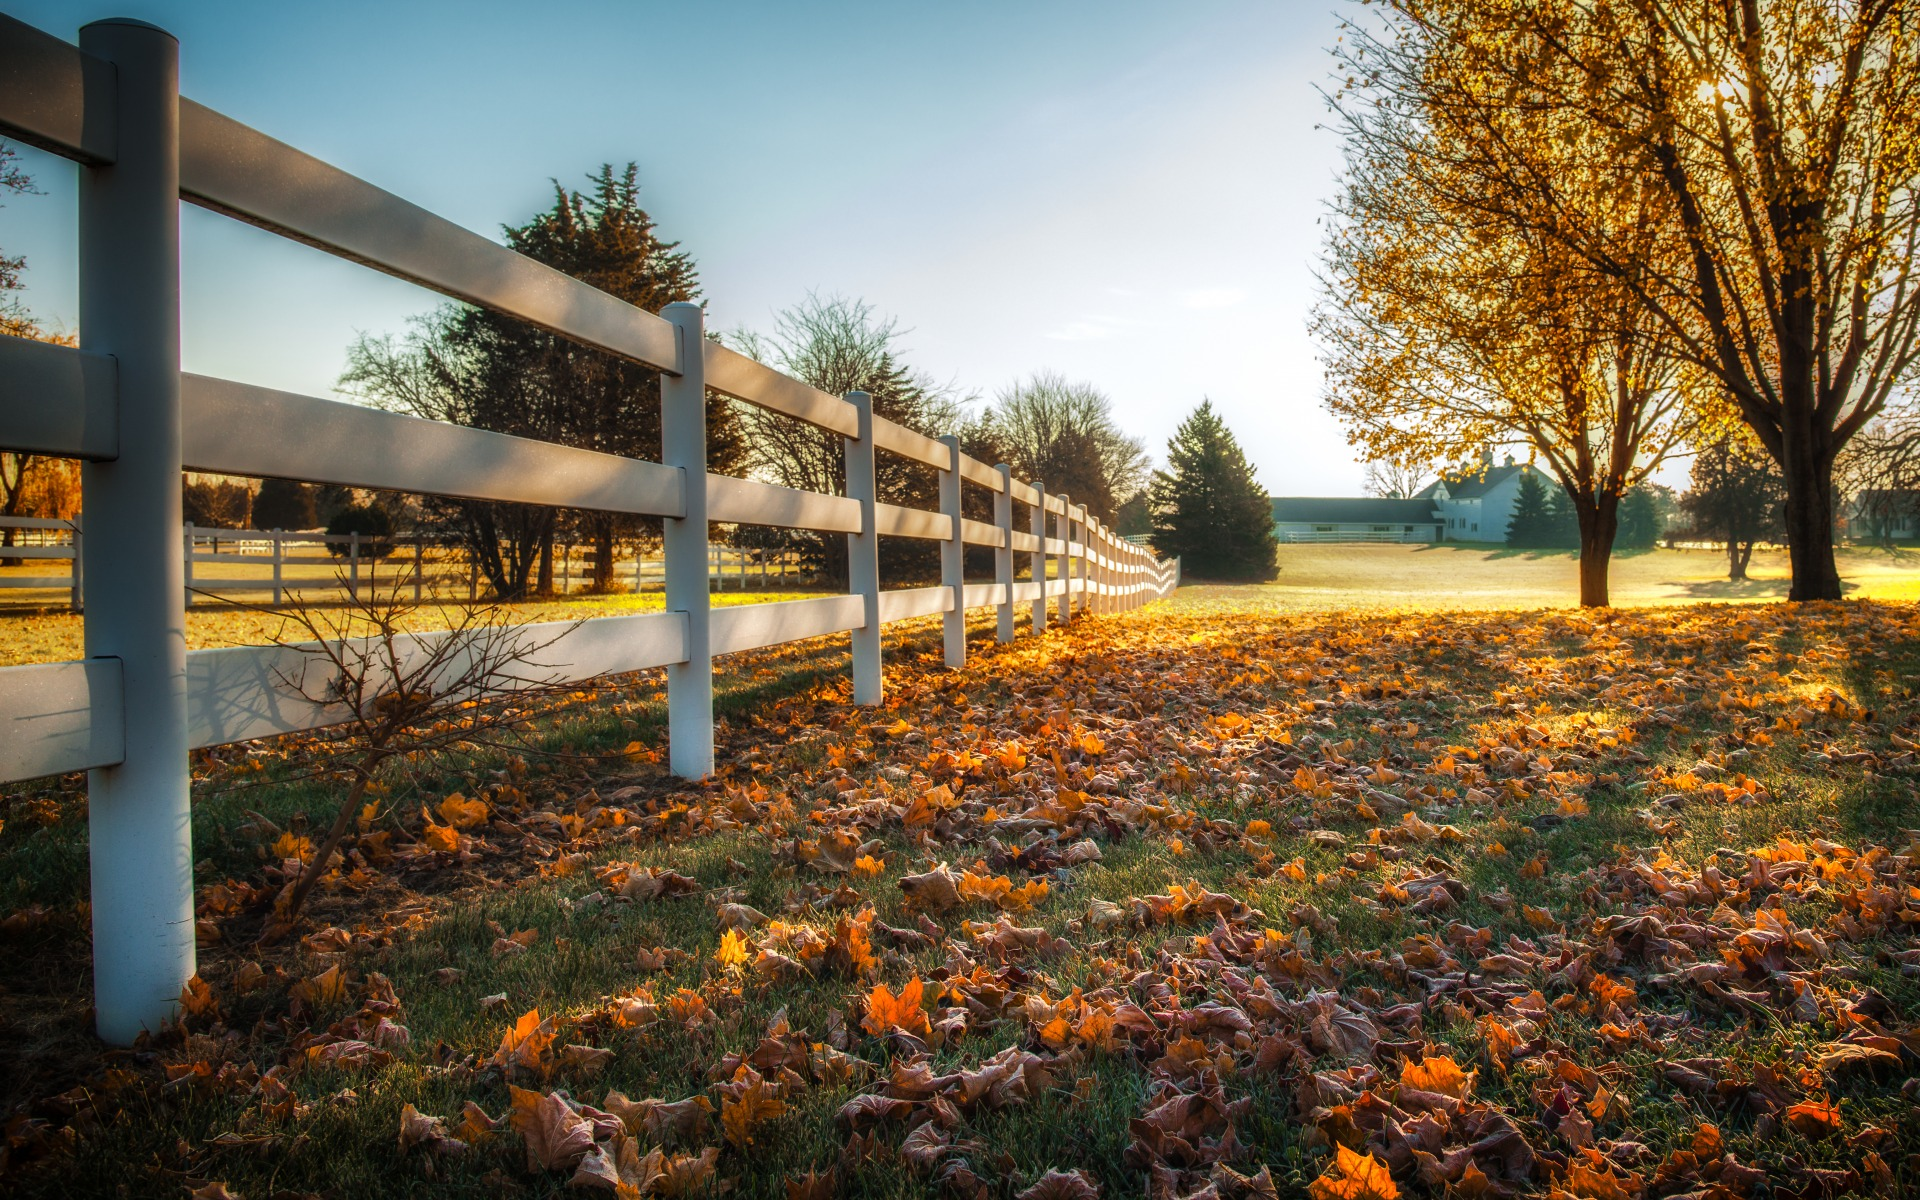 autumn, fence, fallen leaves, sun, trees